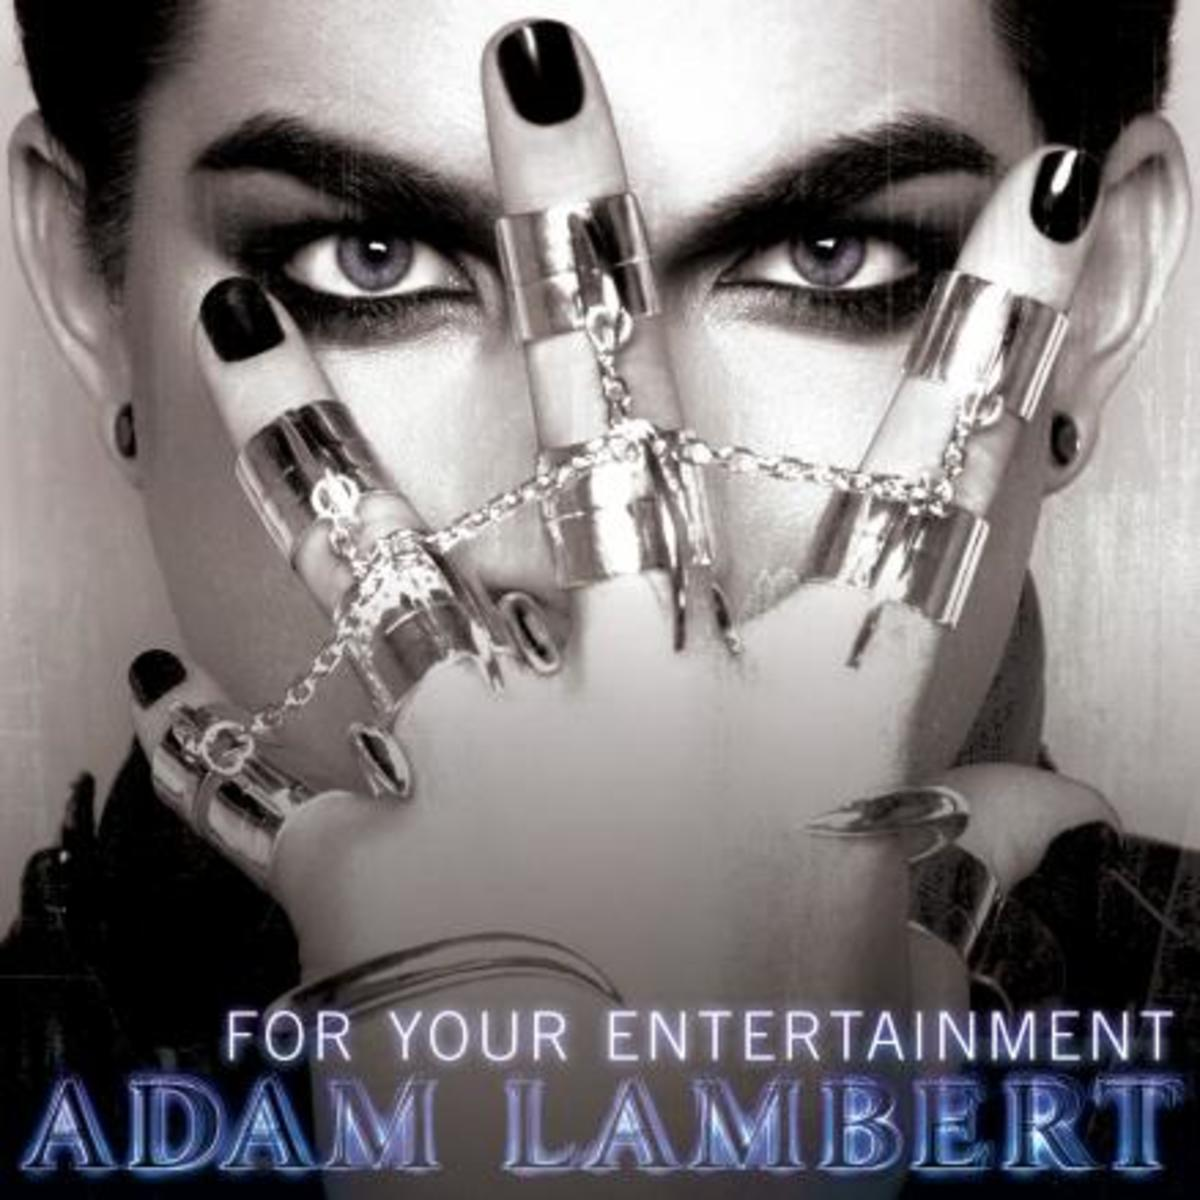 He's even wearing guyliner on the cover of his first solo album!